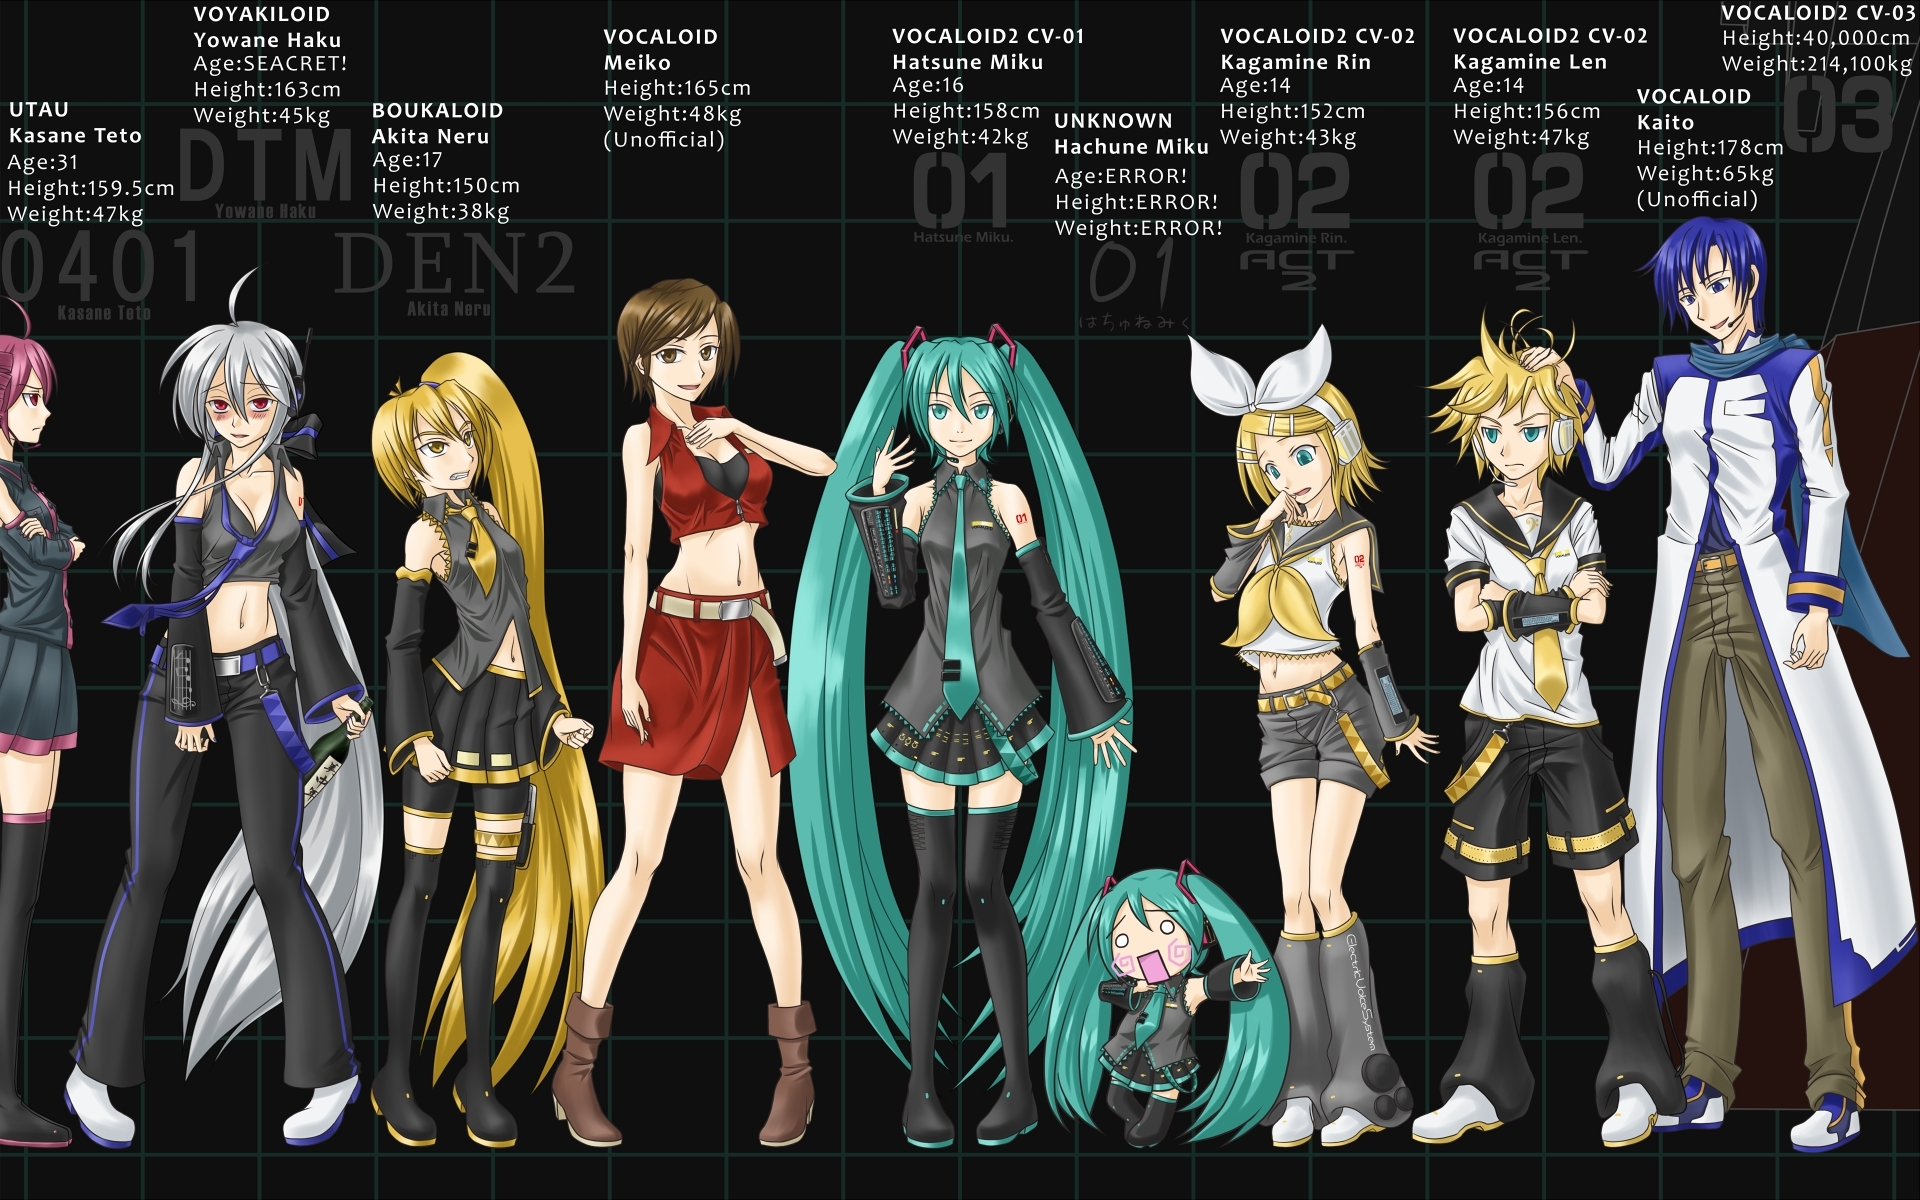 Anime Talk: Vocaloids! | HeroMachine Character Portrait ...